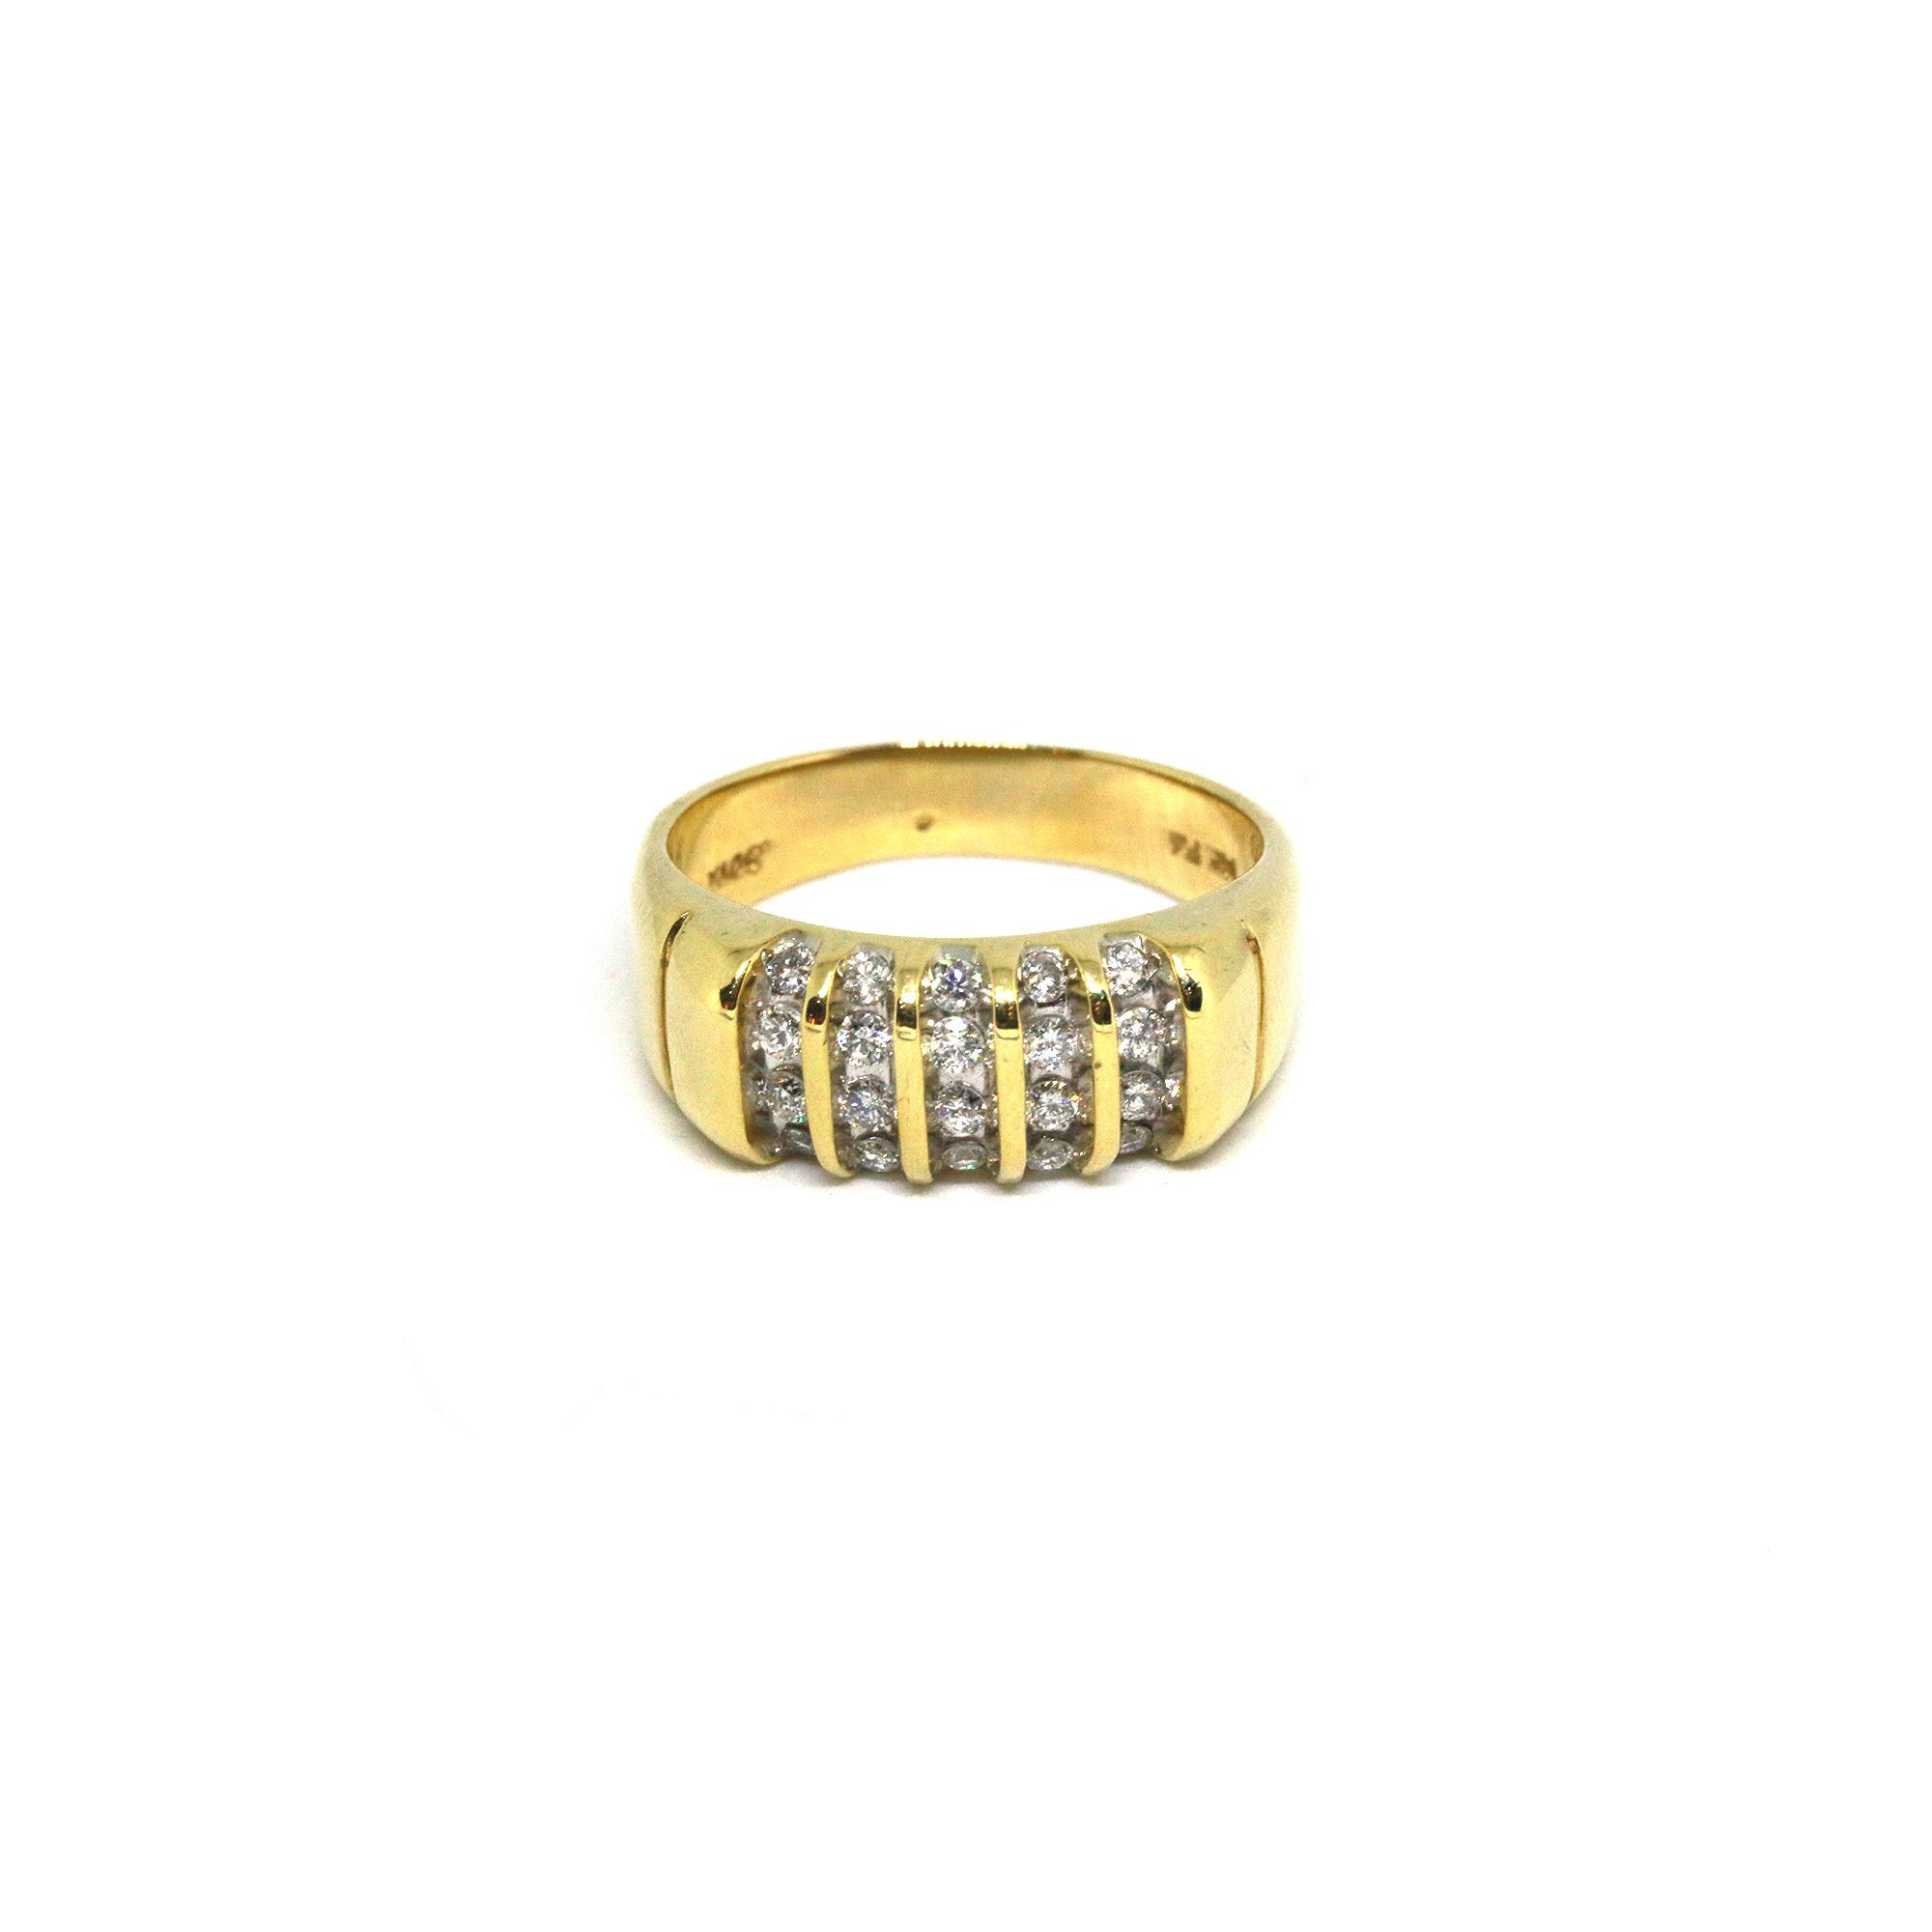 buy ring price starting the jewellery rs hera online index gents design luxurious rings